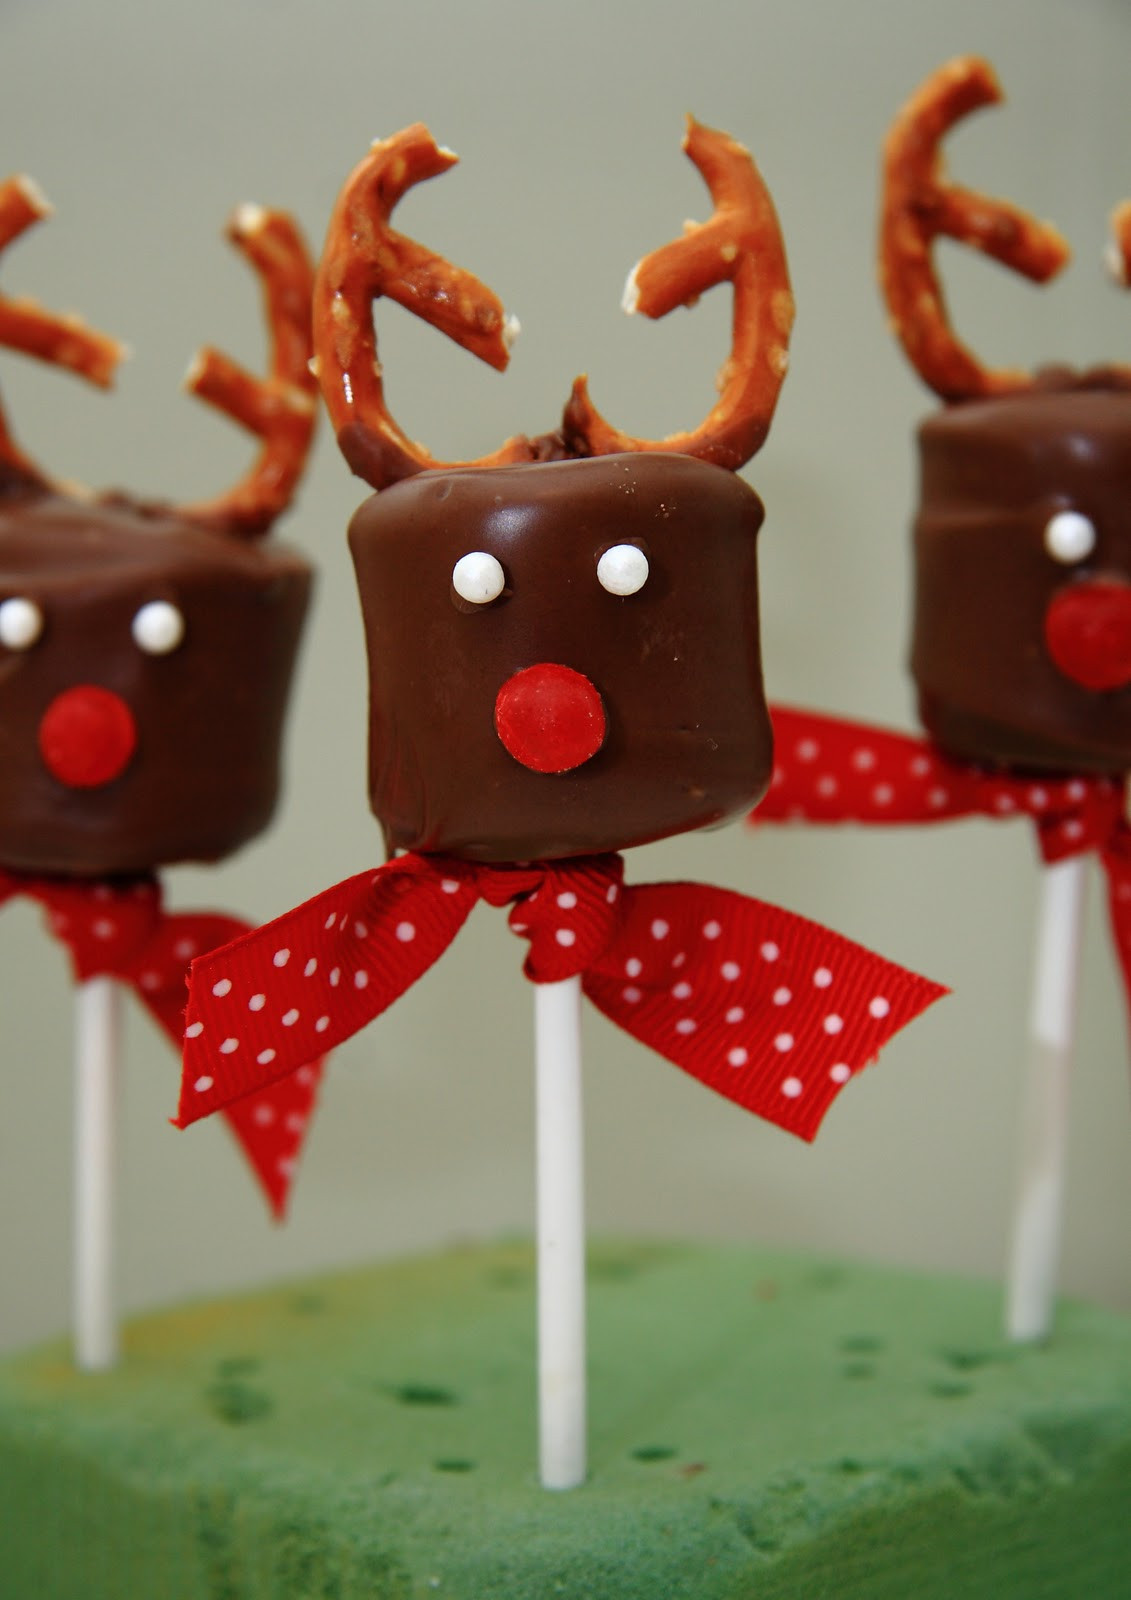 Christmas Party Ideas For Toddler  21 Amazing Christmas Party Ideas for Kids